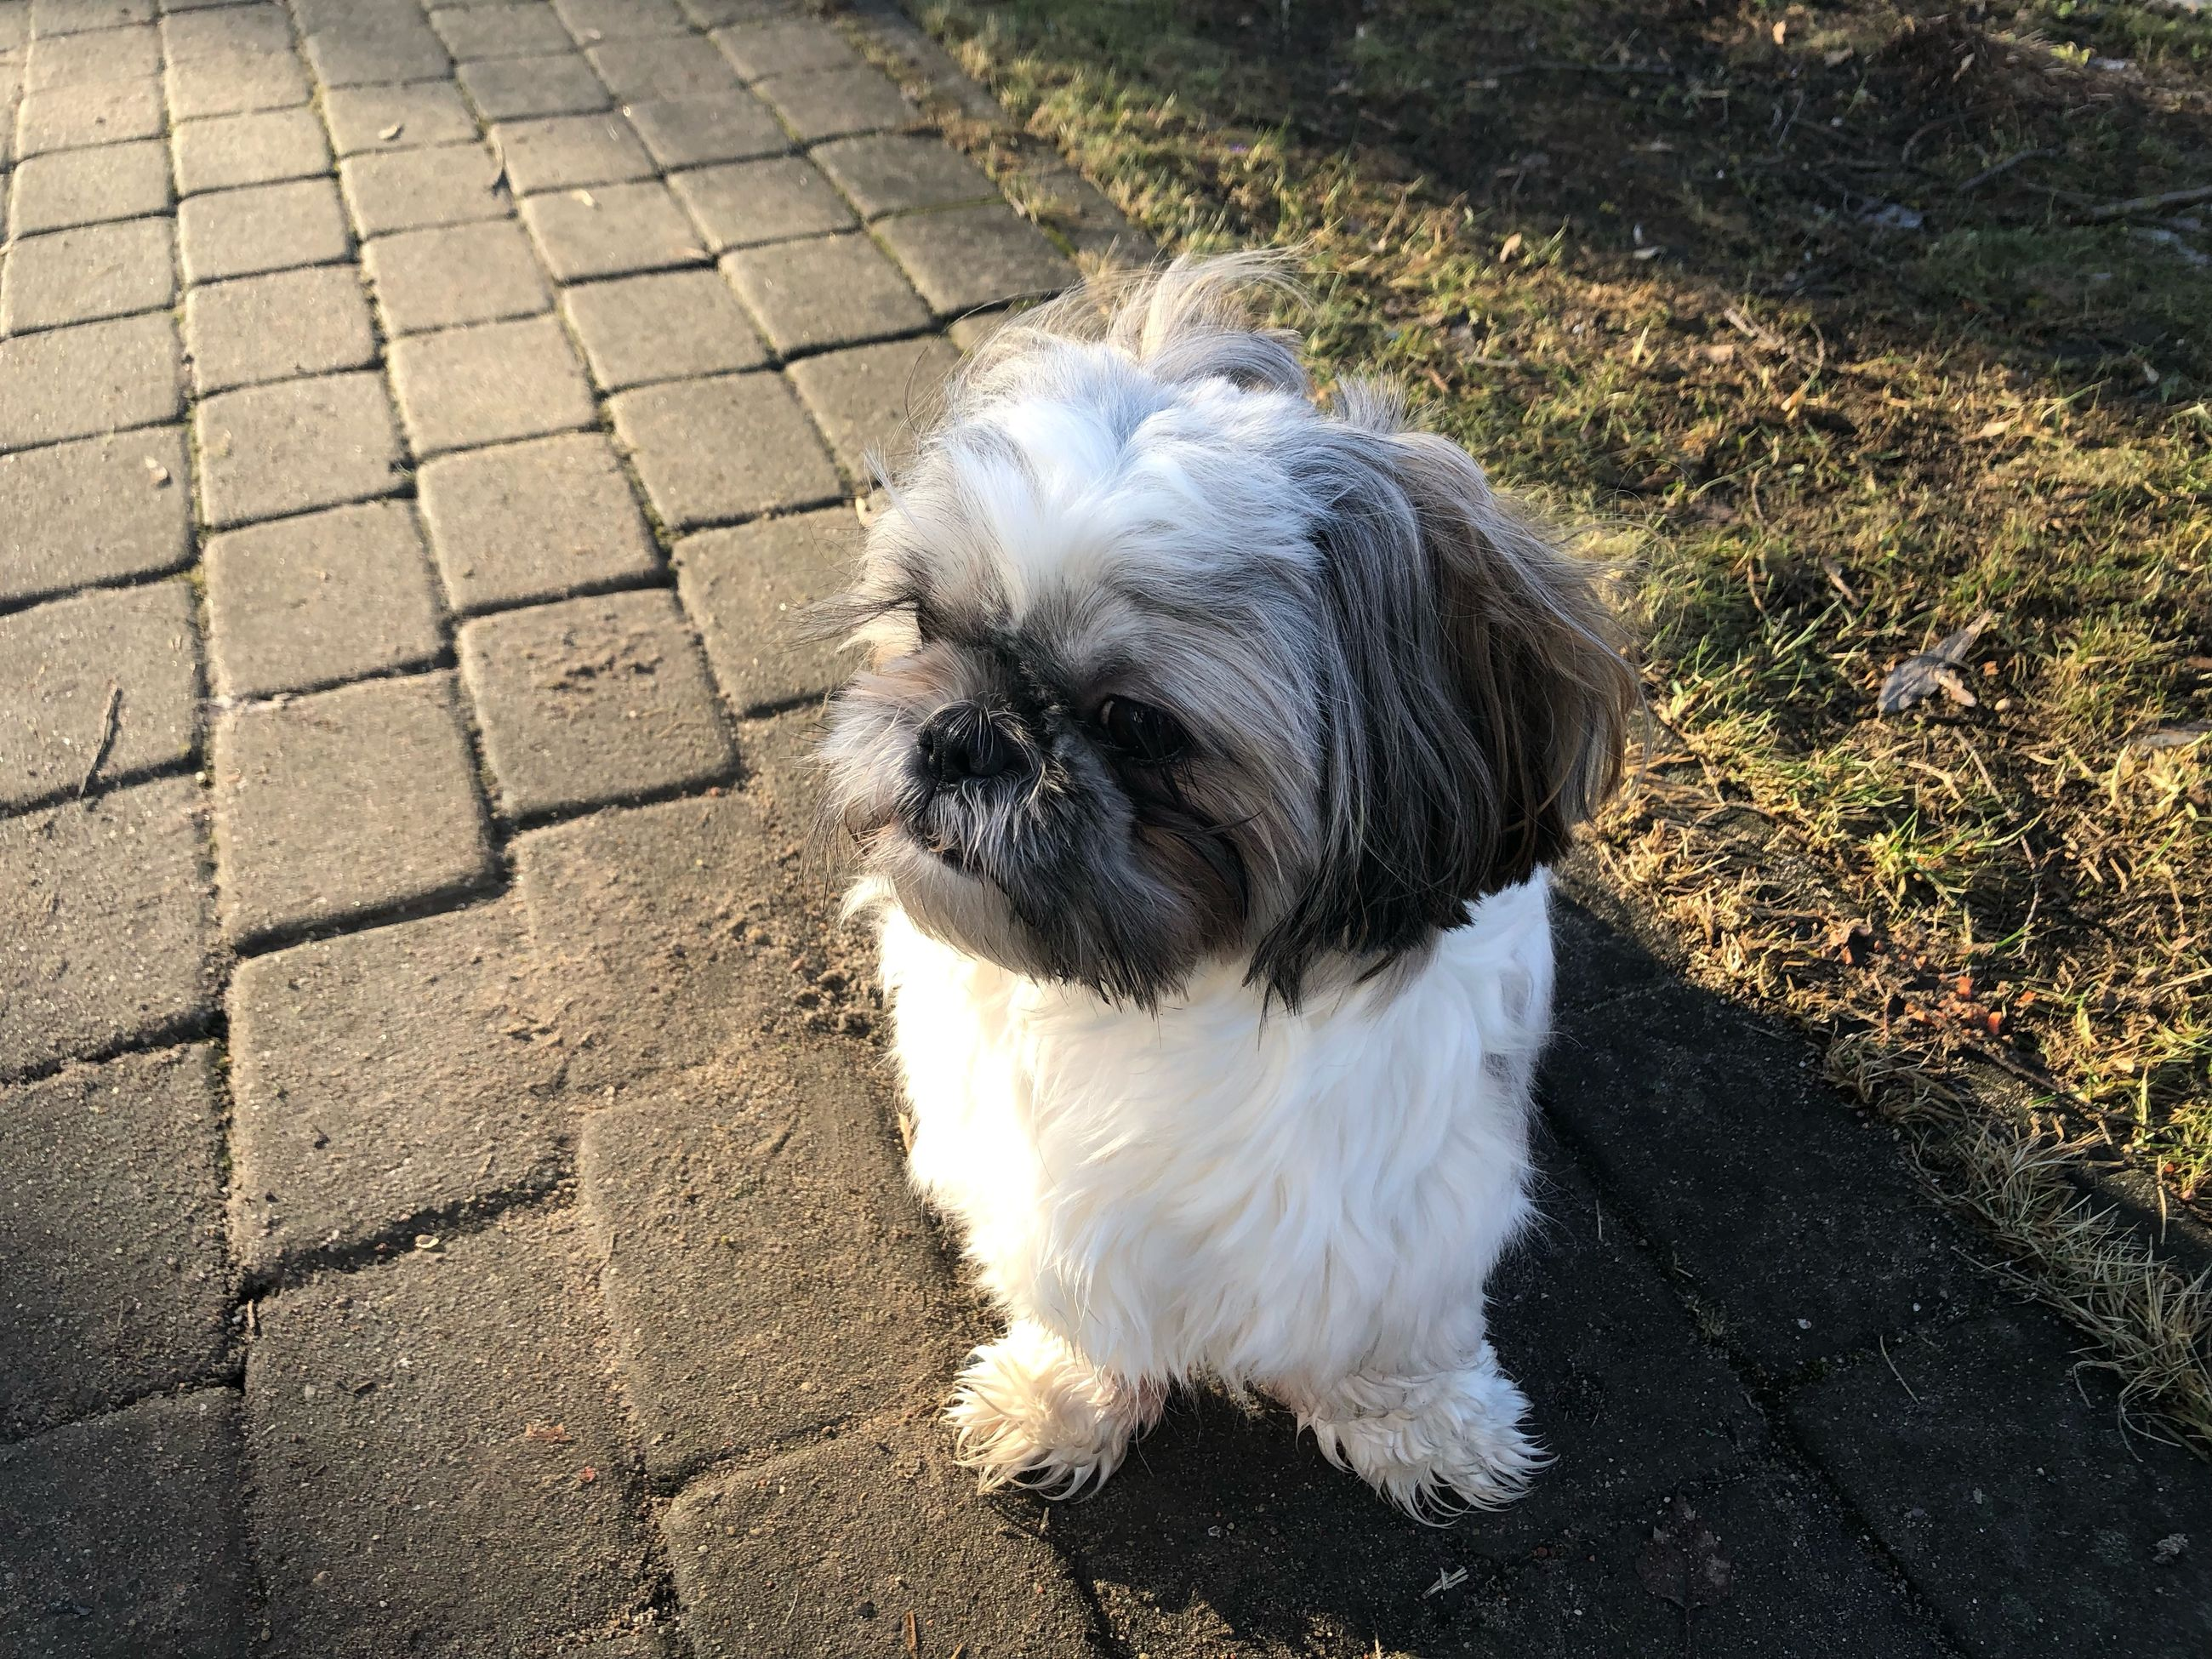 domestic, pets, domestic animals, one animal, mammal, animal themes, animal, canine, dog, vertebrate, shih tzu, lap dog, high angle view, day, small, no people, white color, animal hair, outdoors, focus on foreground